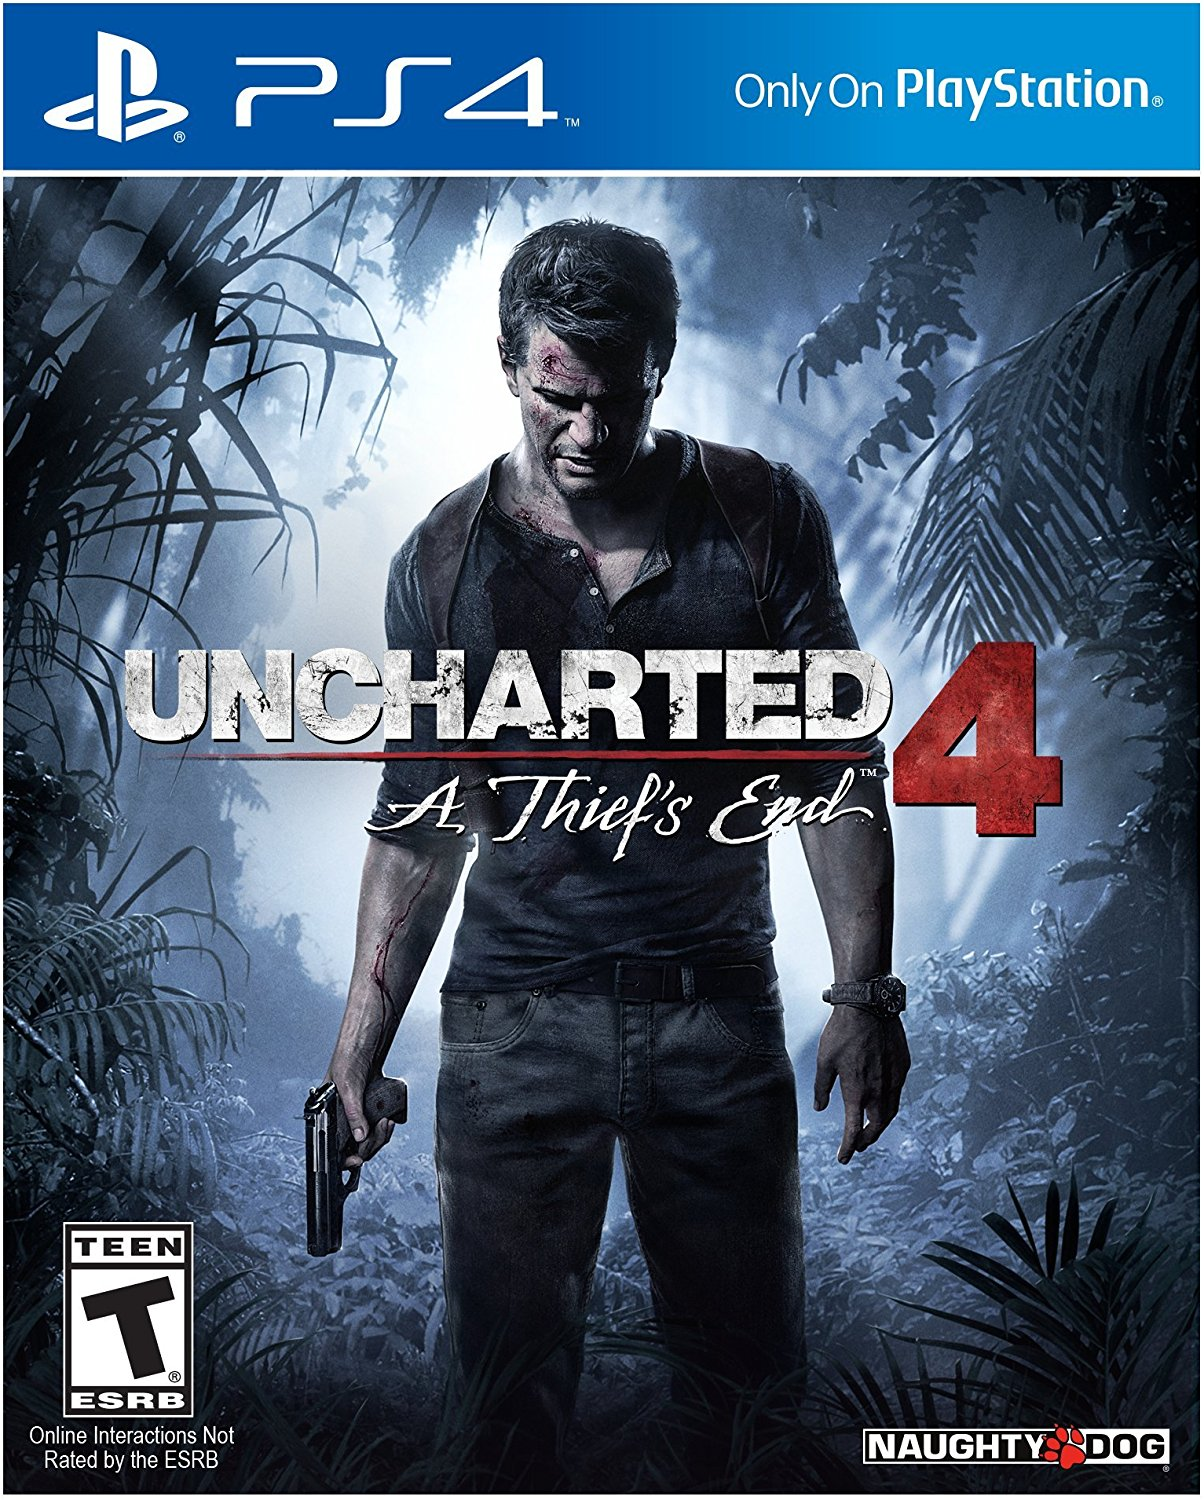 This is a great price on one of [the PS4's best games](https://www.amazon.com/Uncharted-4-Thiefs-End-PlayStation/dp/B00GODZYNA/tag=toysj-20?tag=toolstoysdeals-20&th=1).